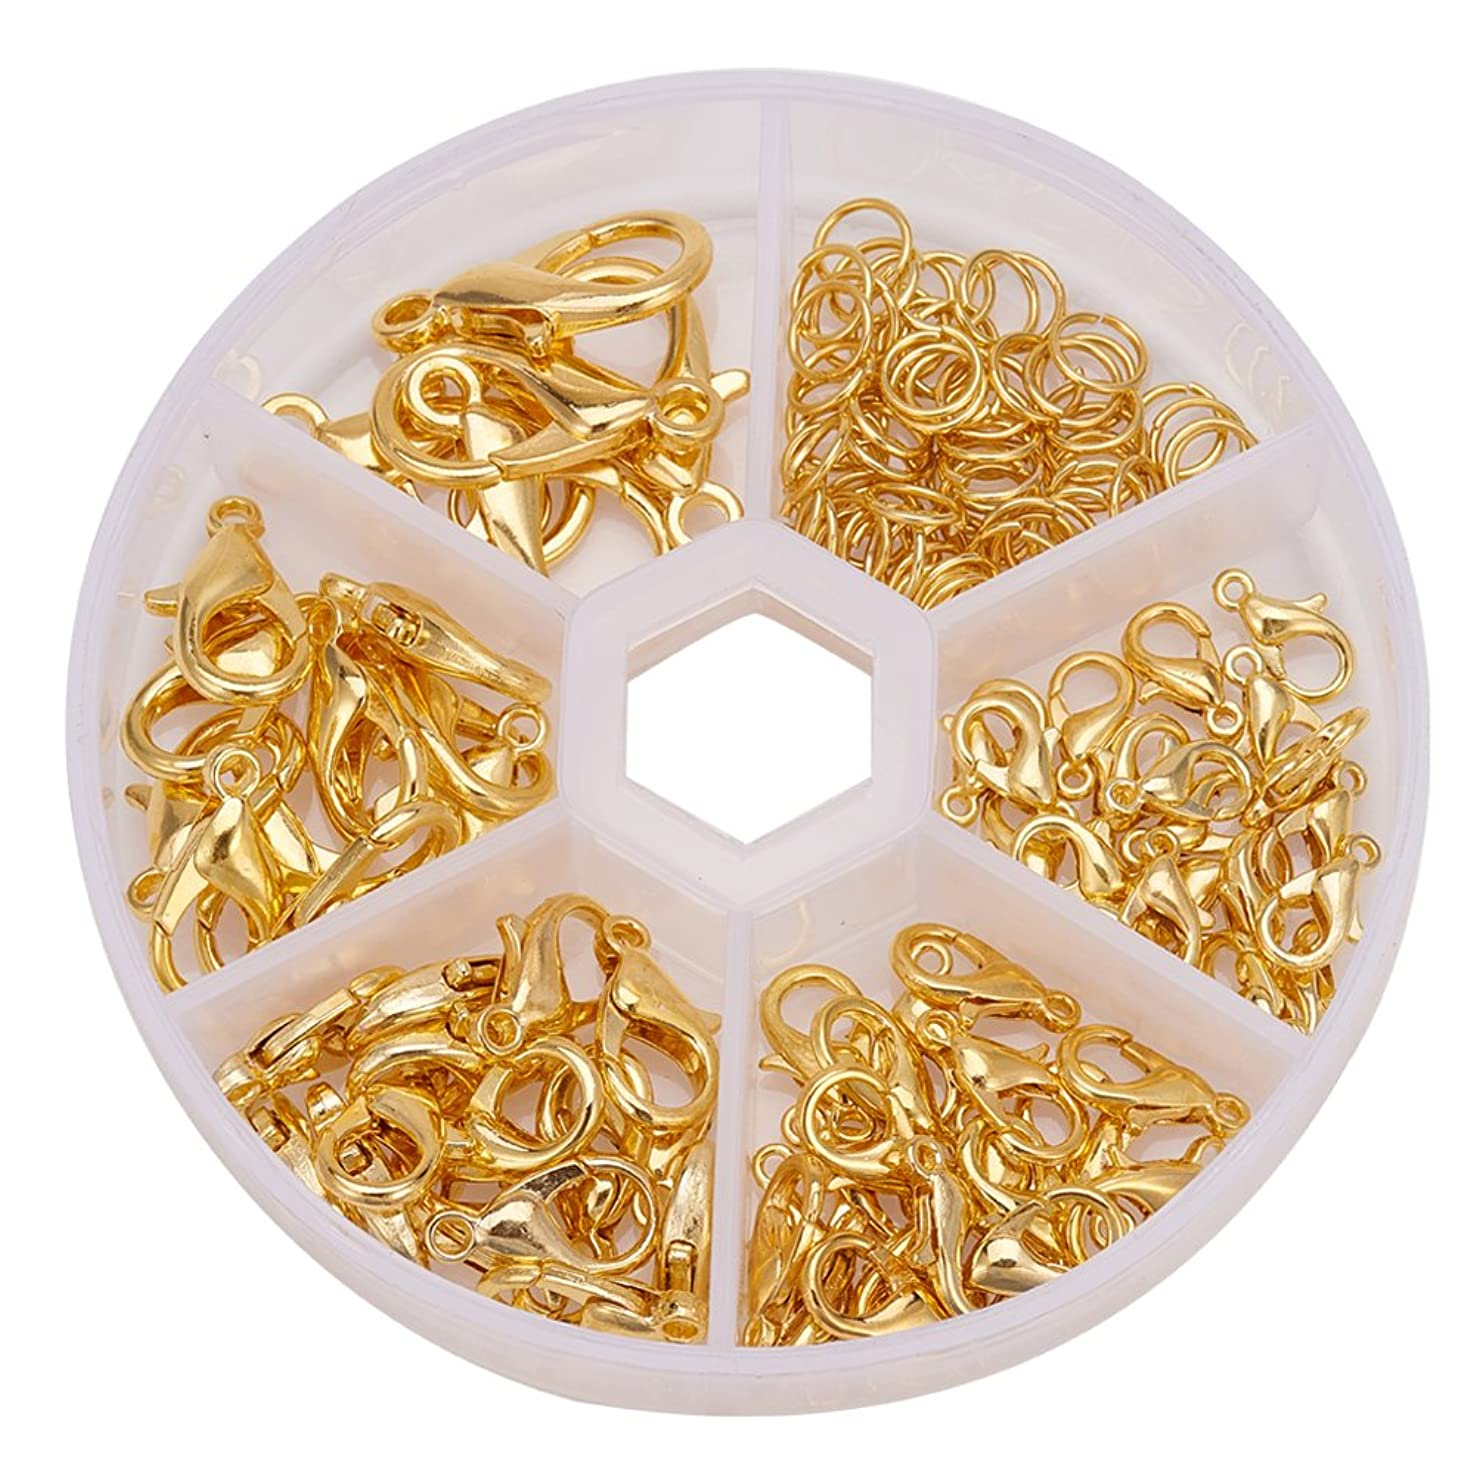 PH PandaHall 70pcs 5 Size Golden Zinc Alloy Lobster Claw Clasps and 40~50pcs 6mm Iron Open Jump Rings for Jewelry Making Accessories